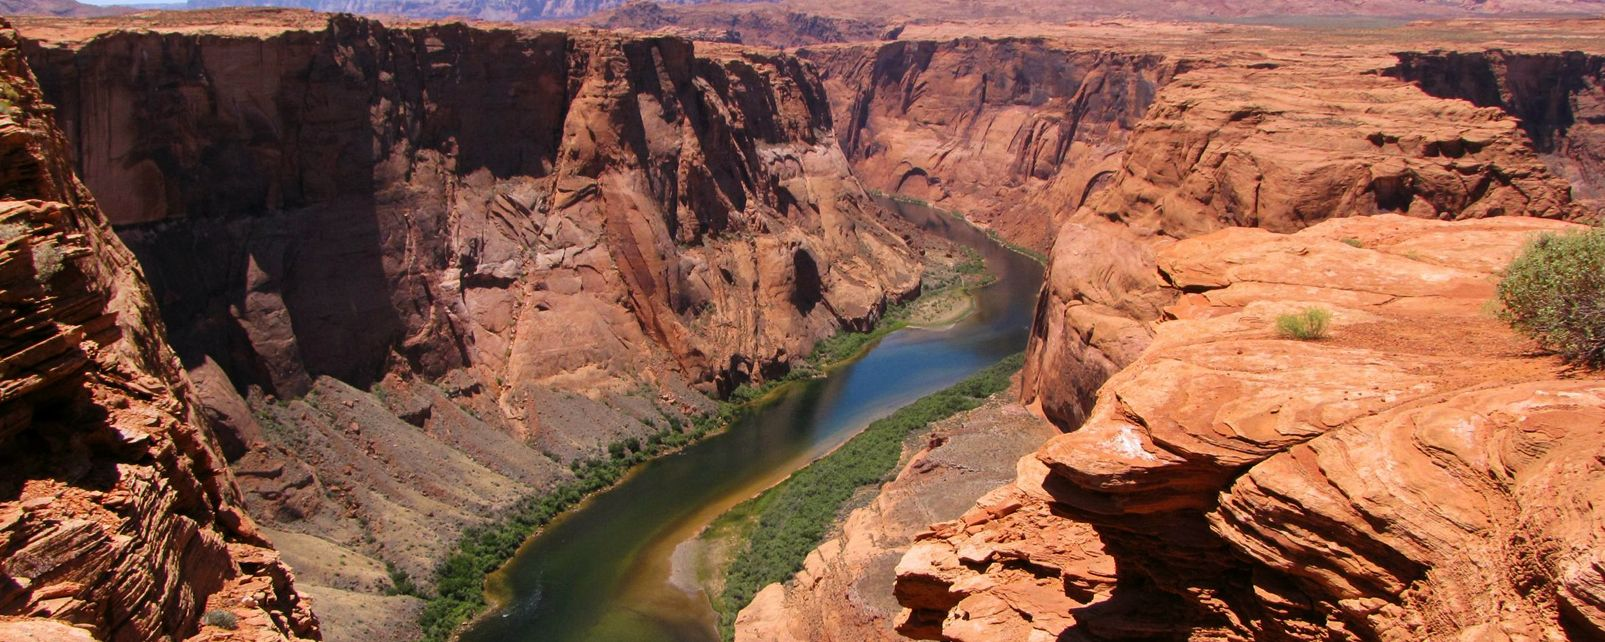 Le parc national du Grand Canyon , des formes surréalistes , Etats-Unis